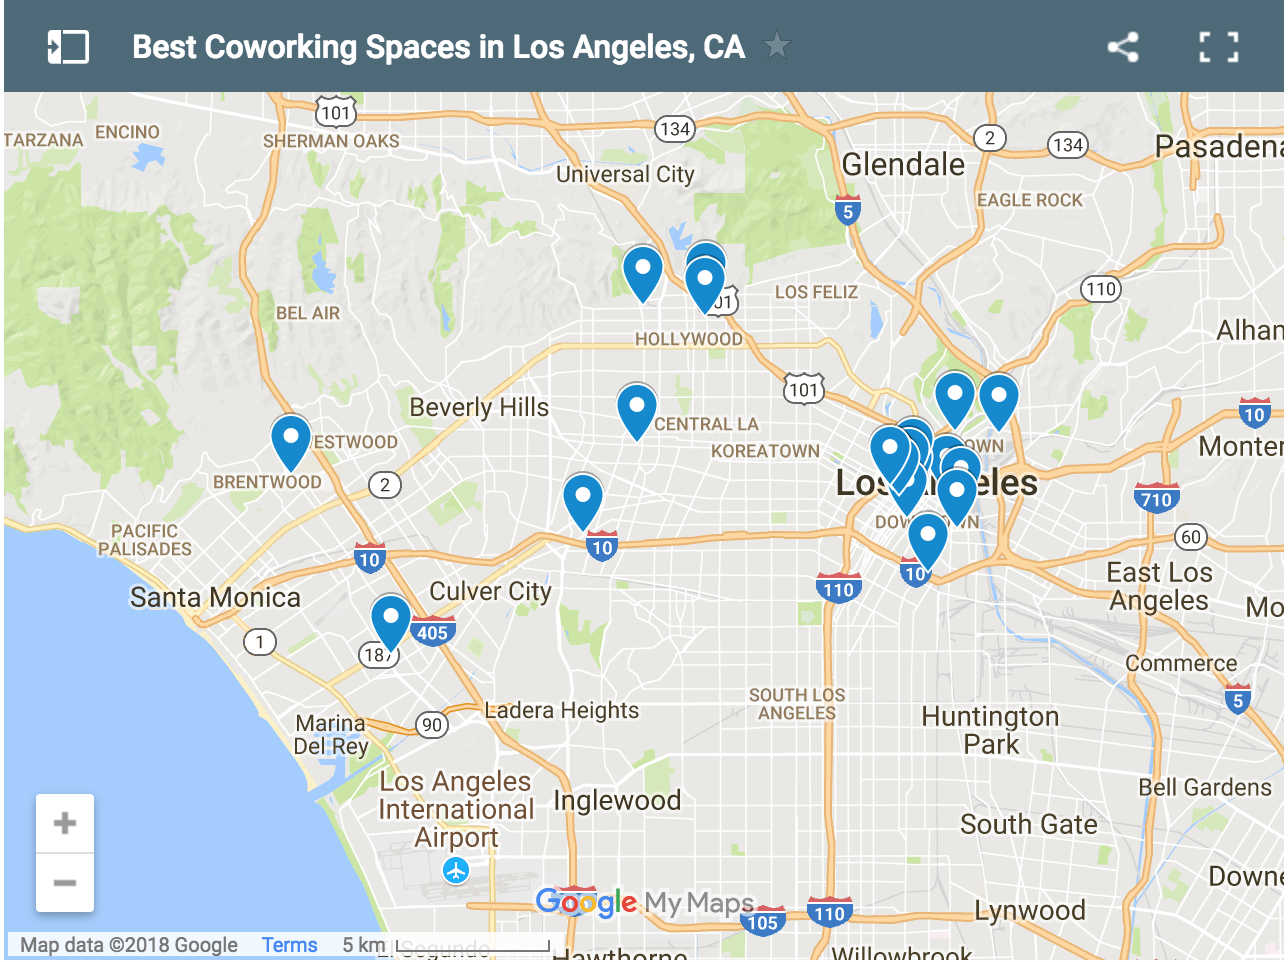 Map of Best Coworking Spaces LA